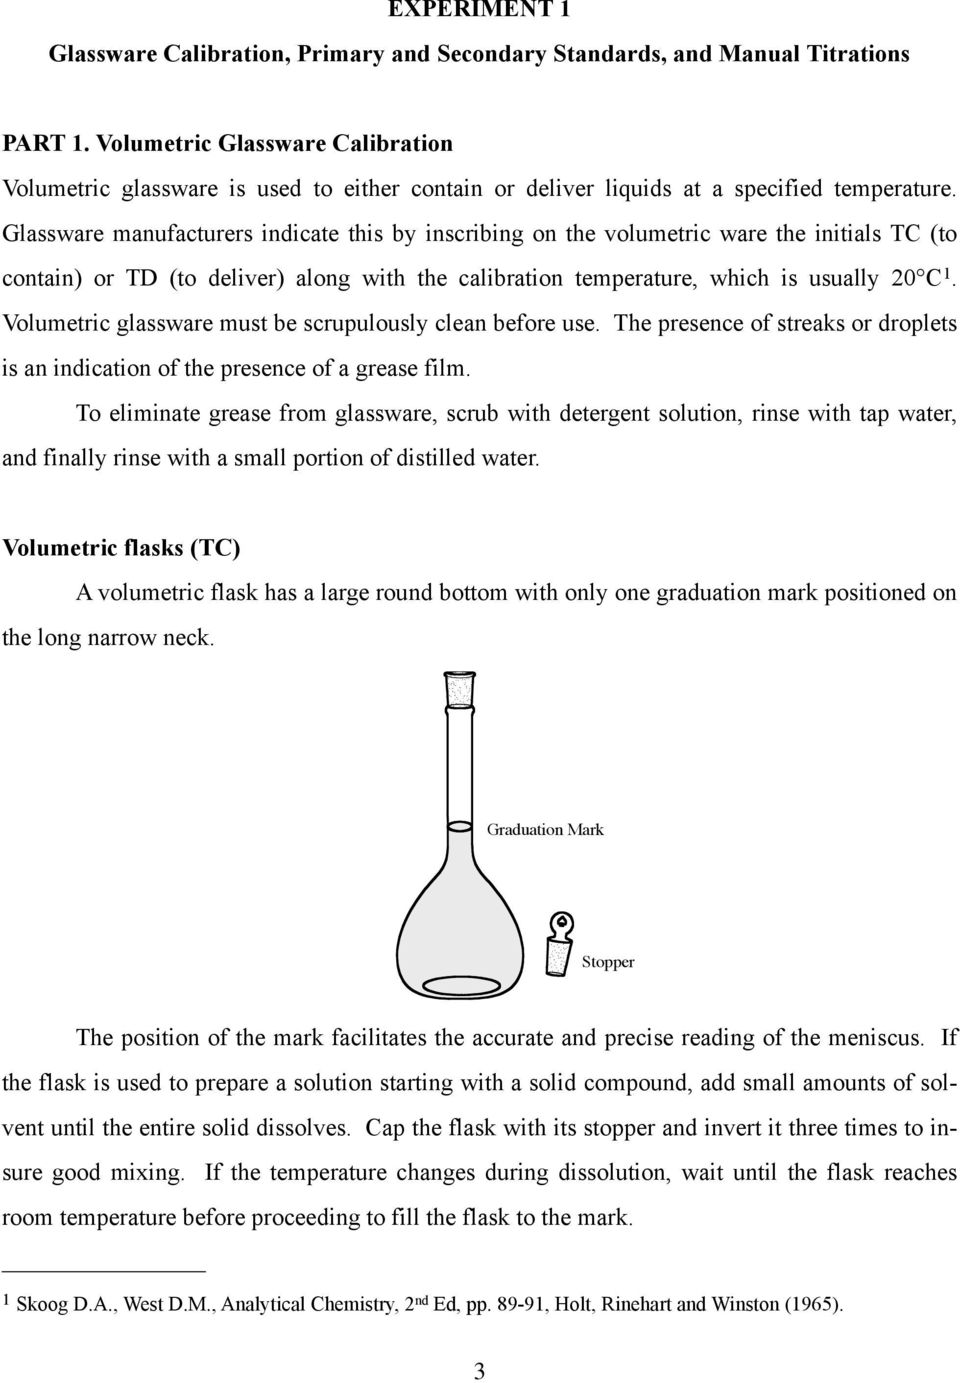 Glassware manufacturers indicate this by inscribing on the volumetric ware the initials TC (to contain) or TD (to deliver) along with the calibration temperature, which is usually 20 C 1.